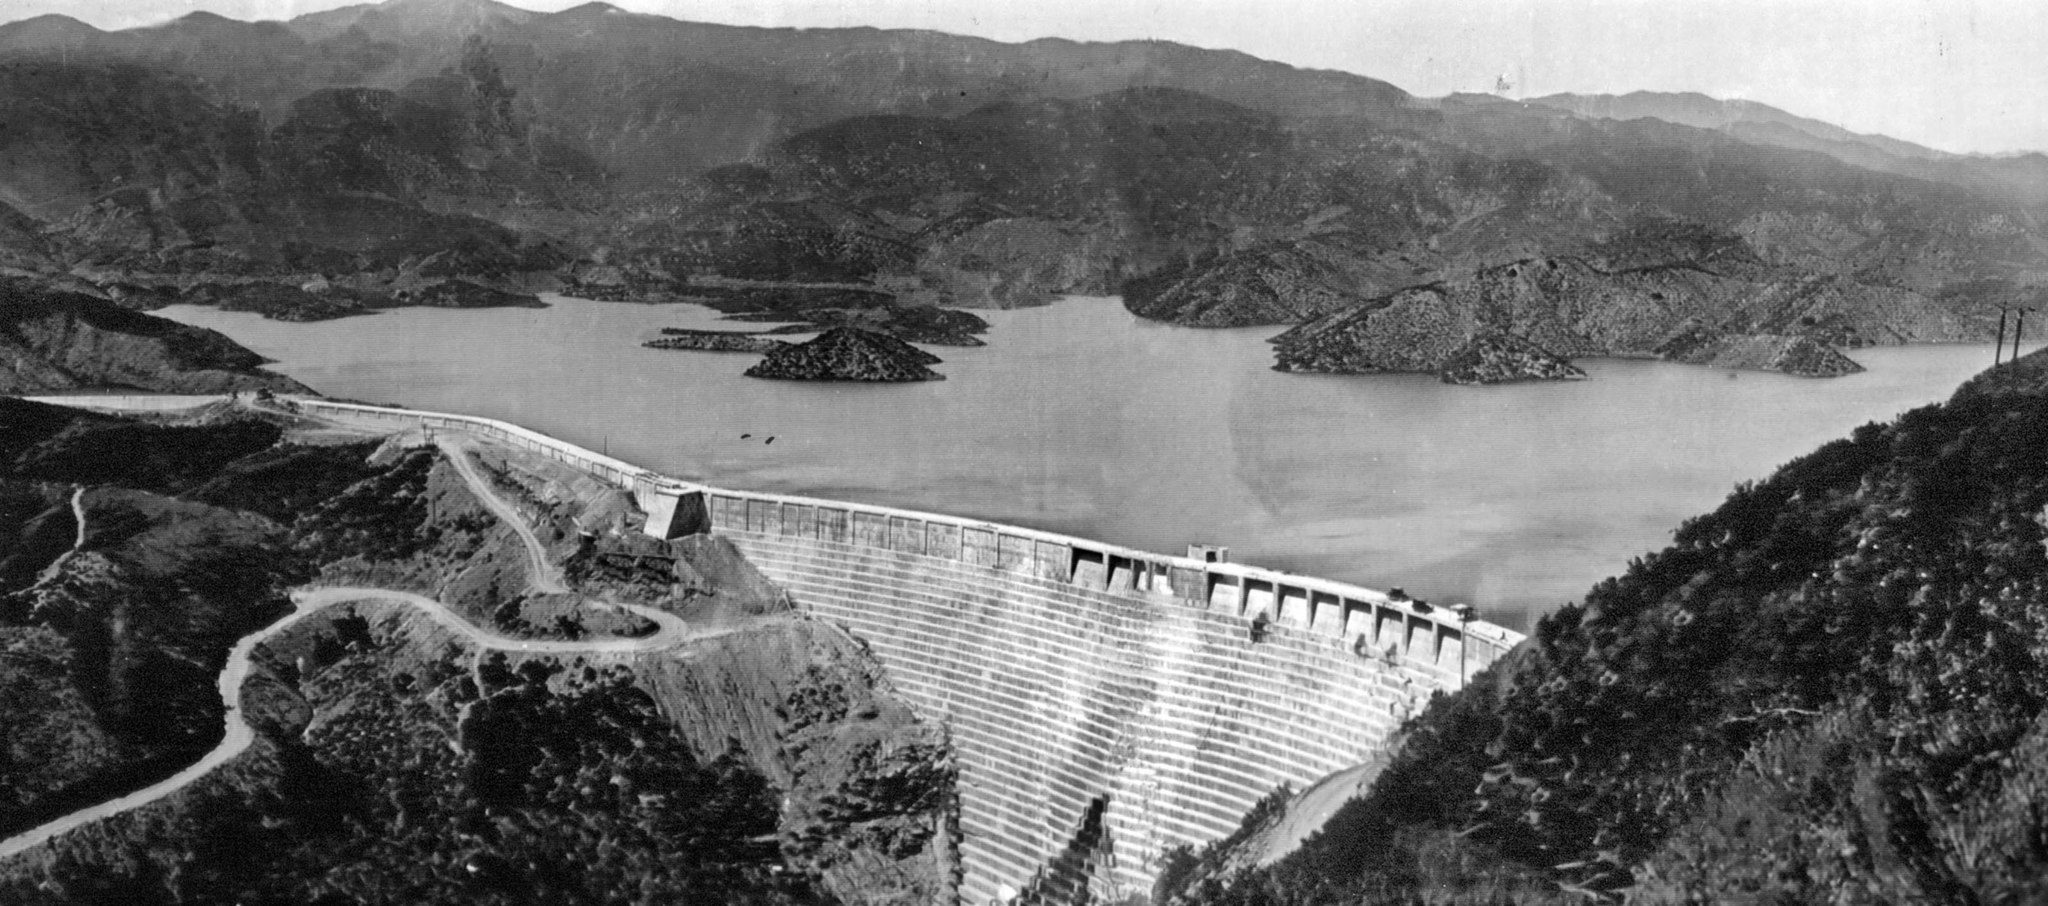 Photo of St. Francis Dam before its collapse. Construction of the dam began in 1924 and finished in